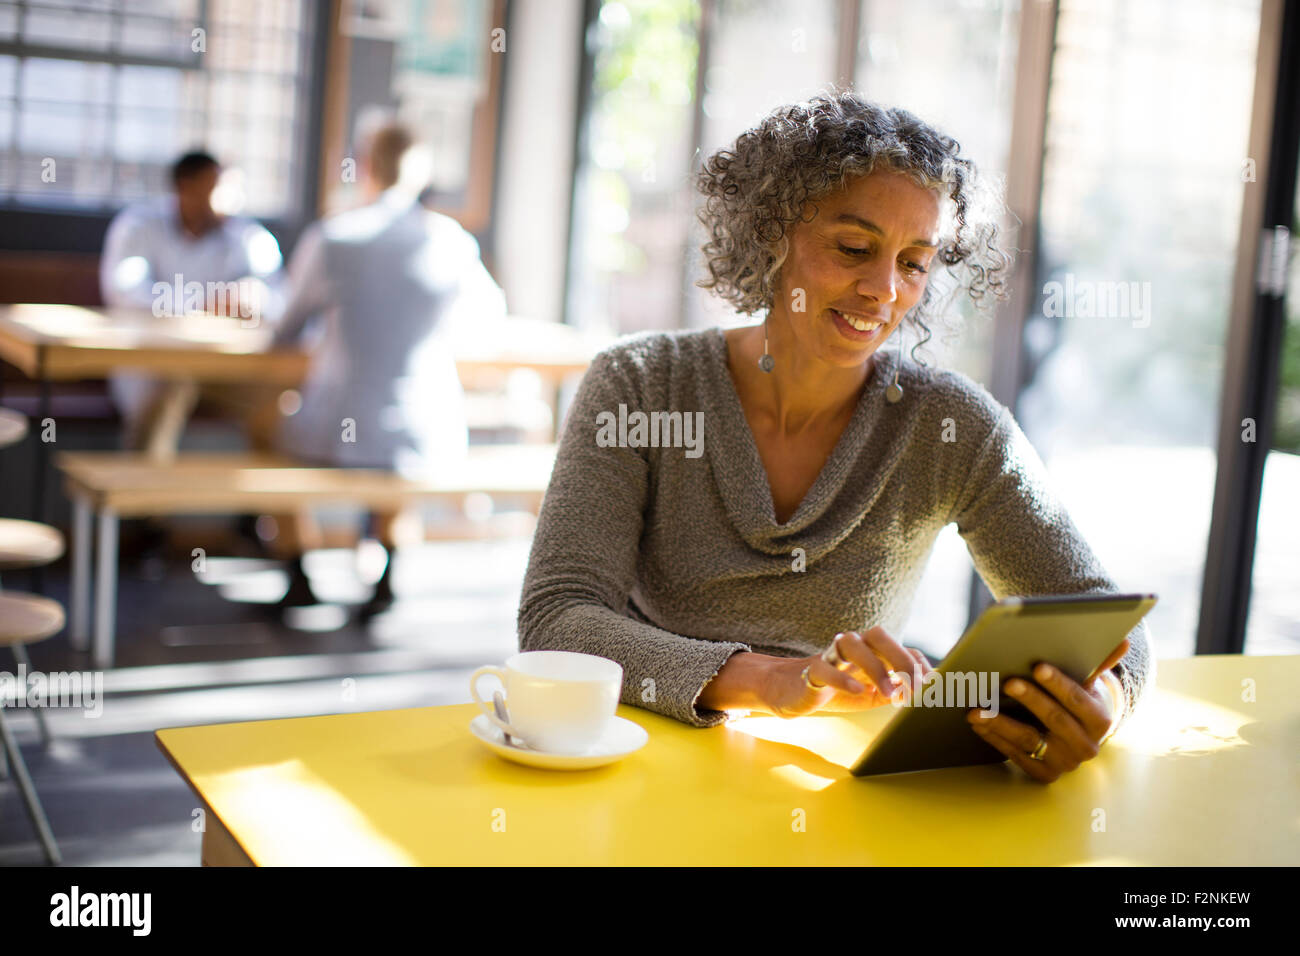 Older woman using digital tablet in cafe Stock Photo